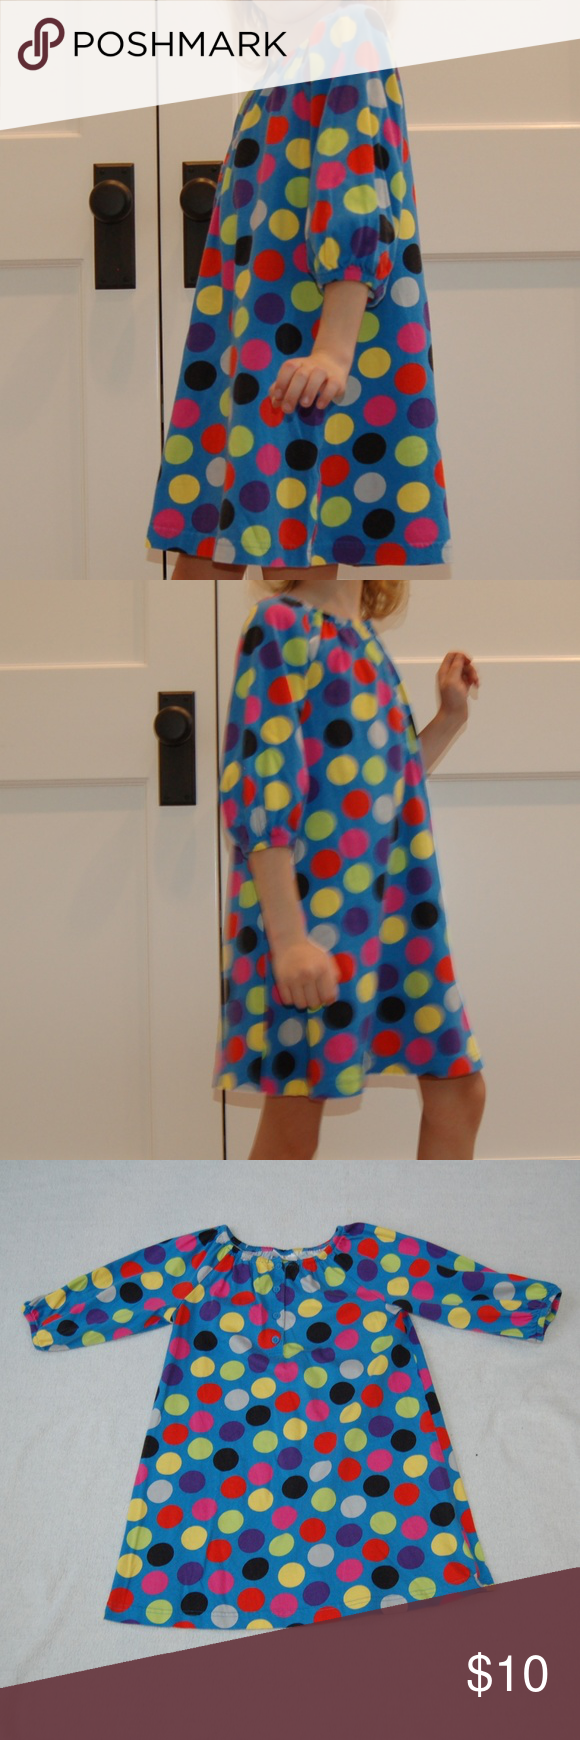 Hanna andersson longsleeved dress this sleeved dress can